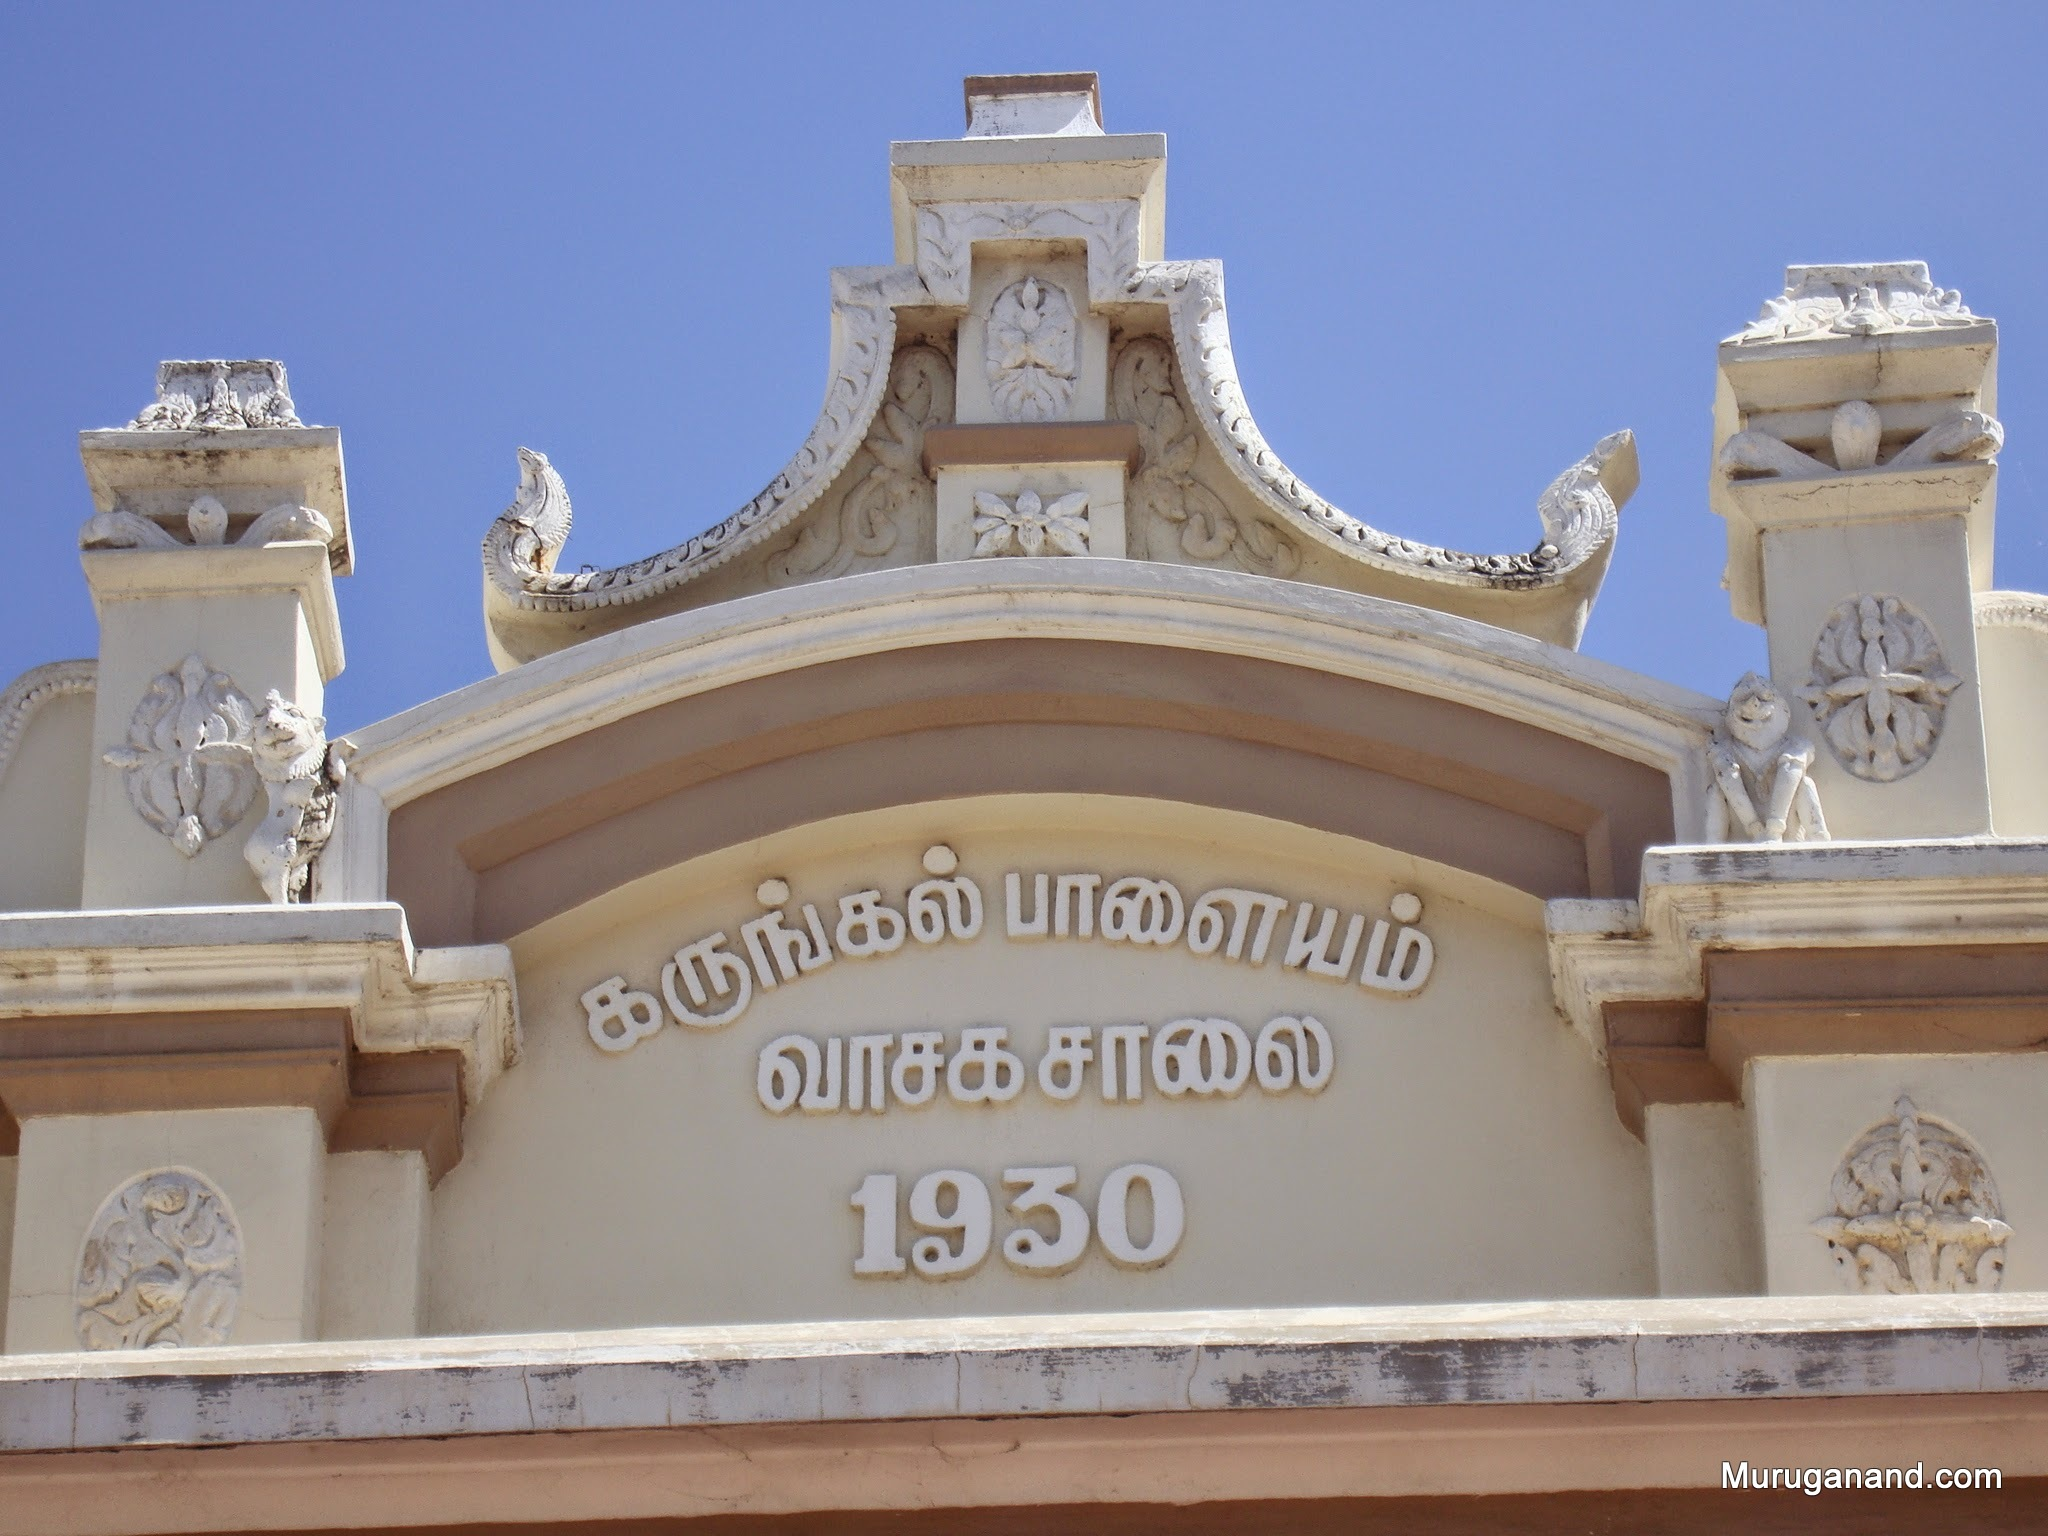 This section was inaugurated by Swami Chitbhavananda of Ramakrishna Tapovanam